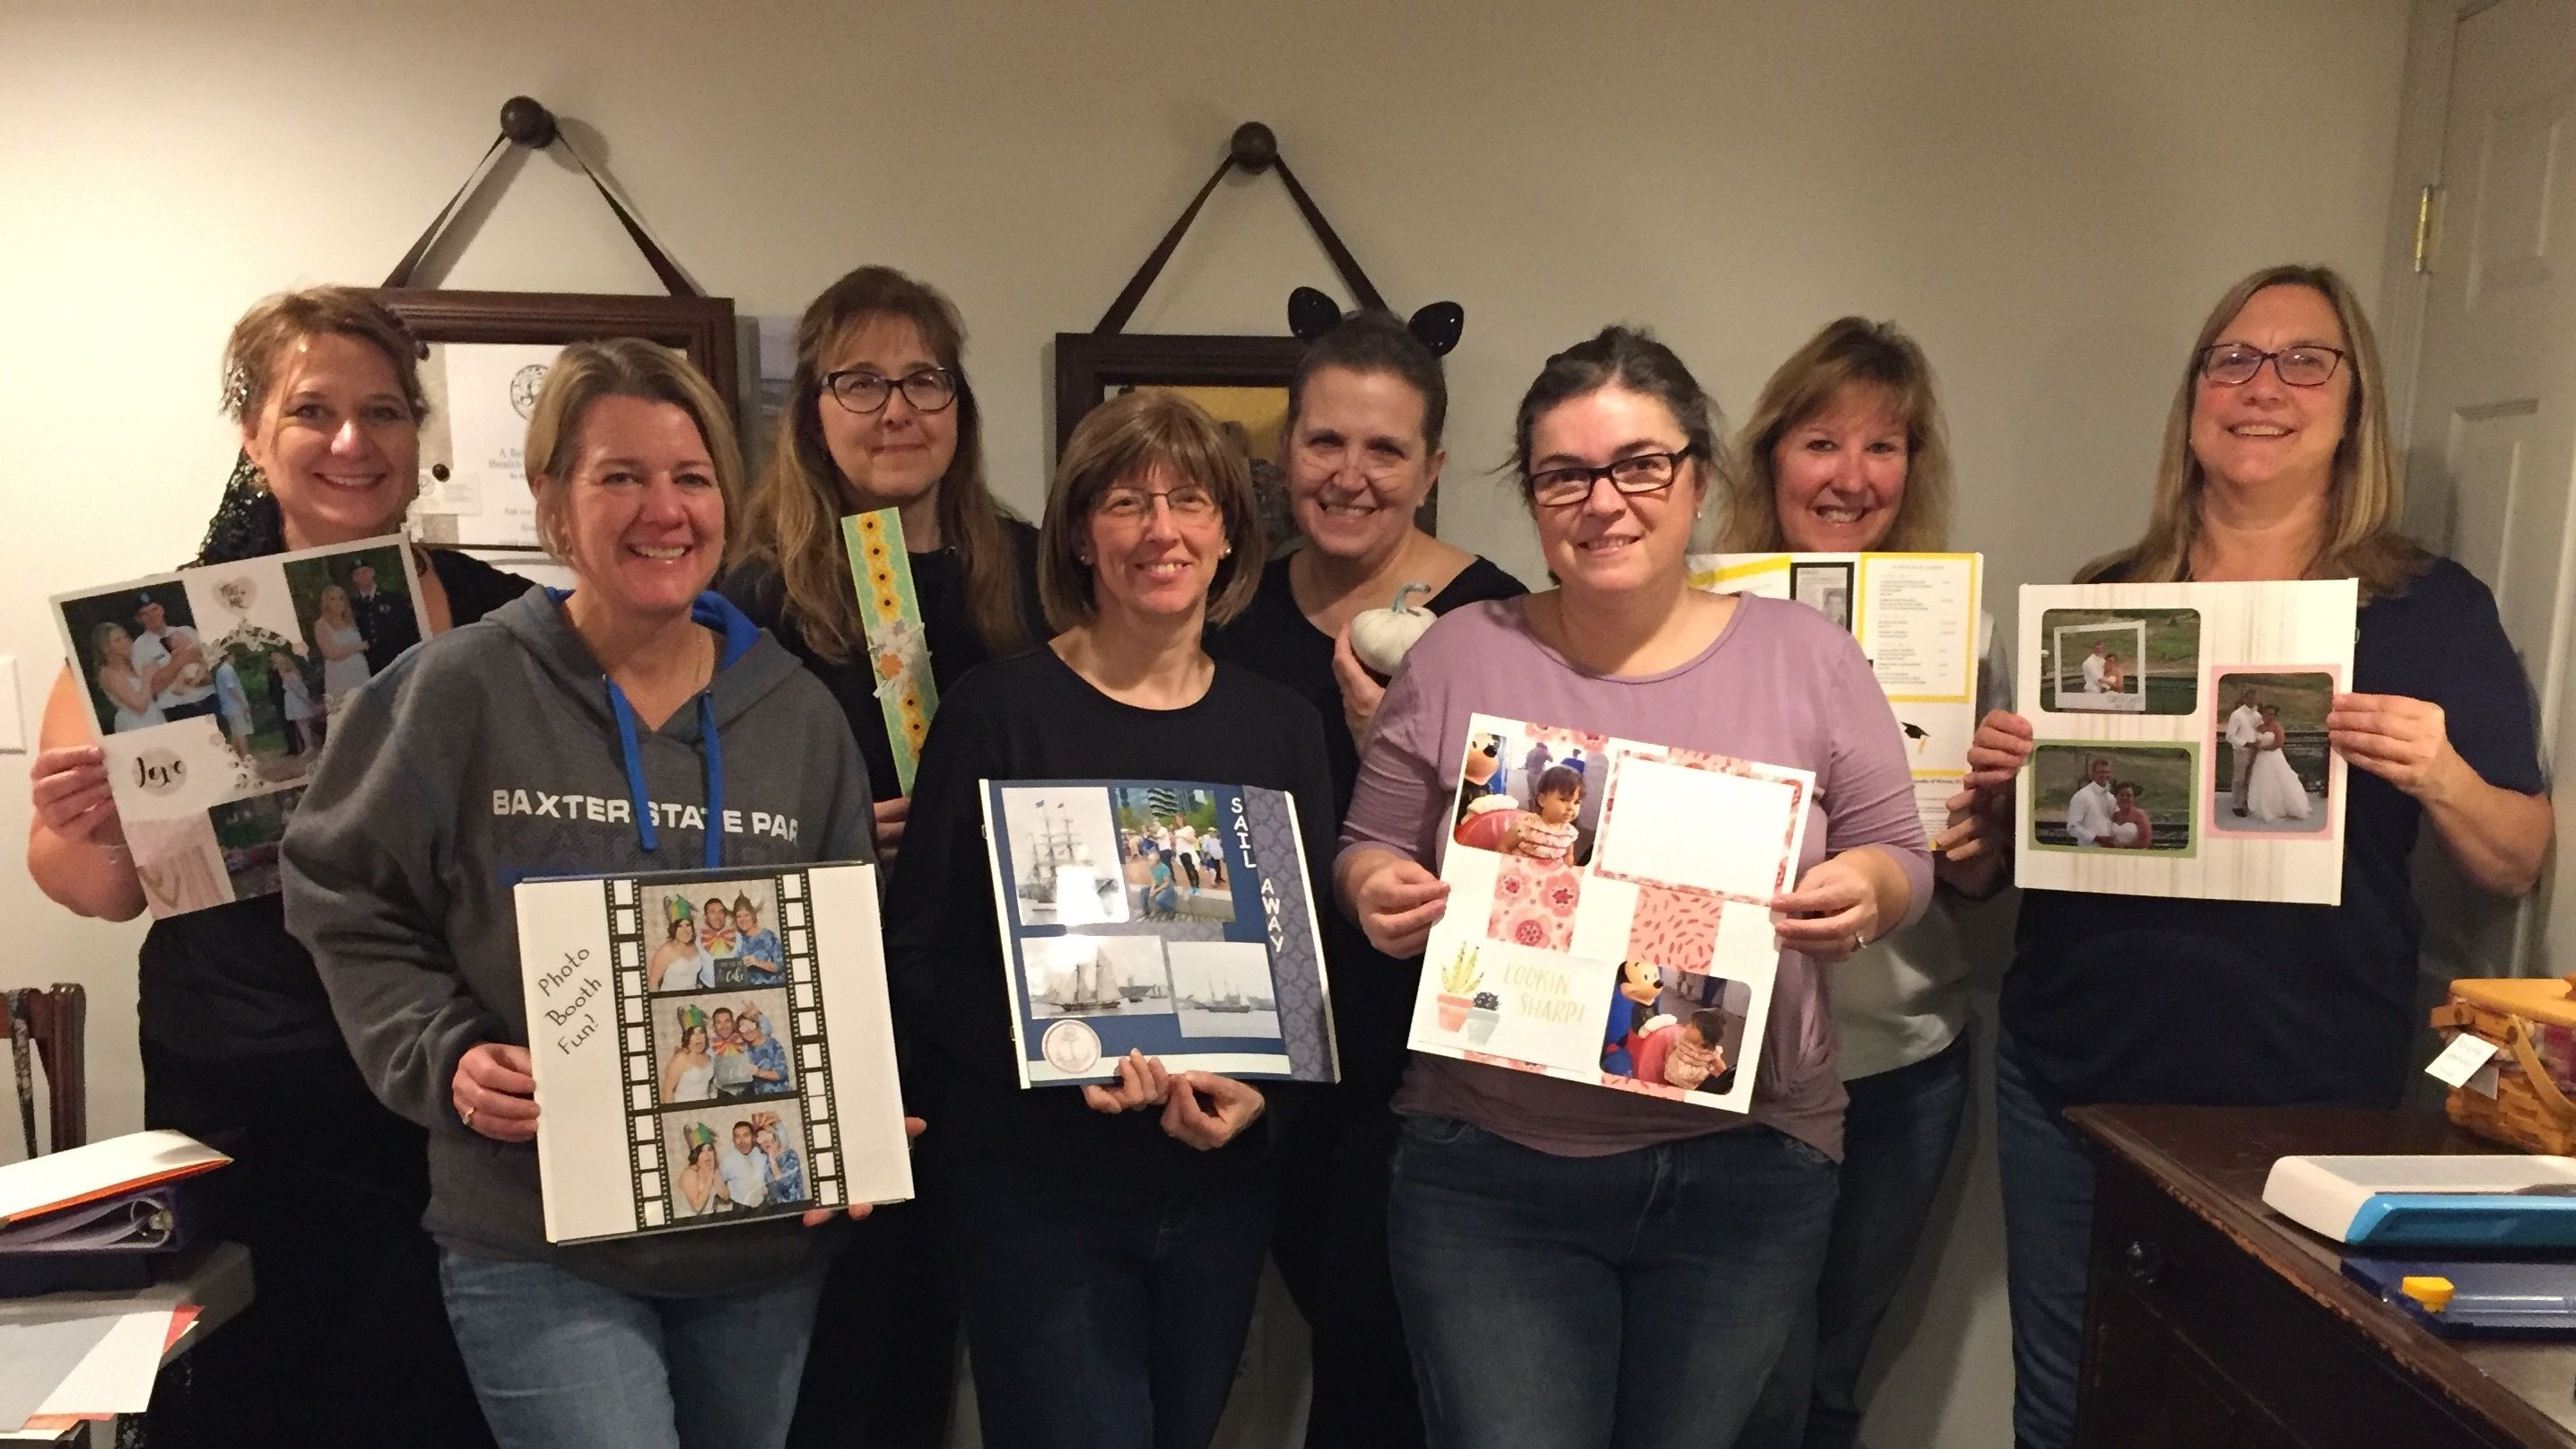 Attleboro Scrapbooking Meetup with Barbara